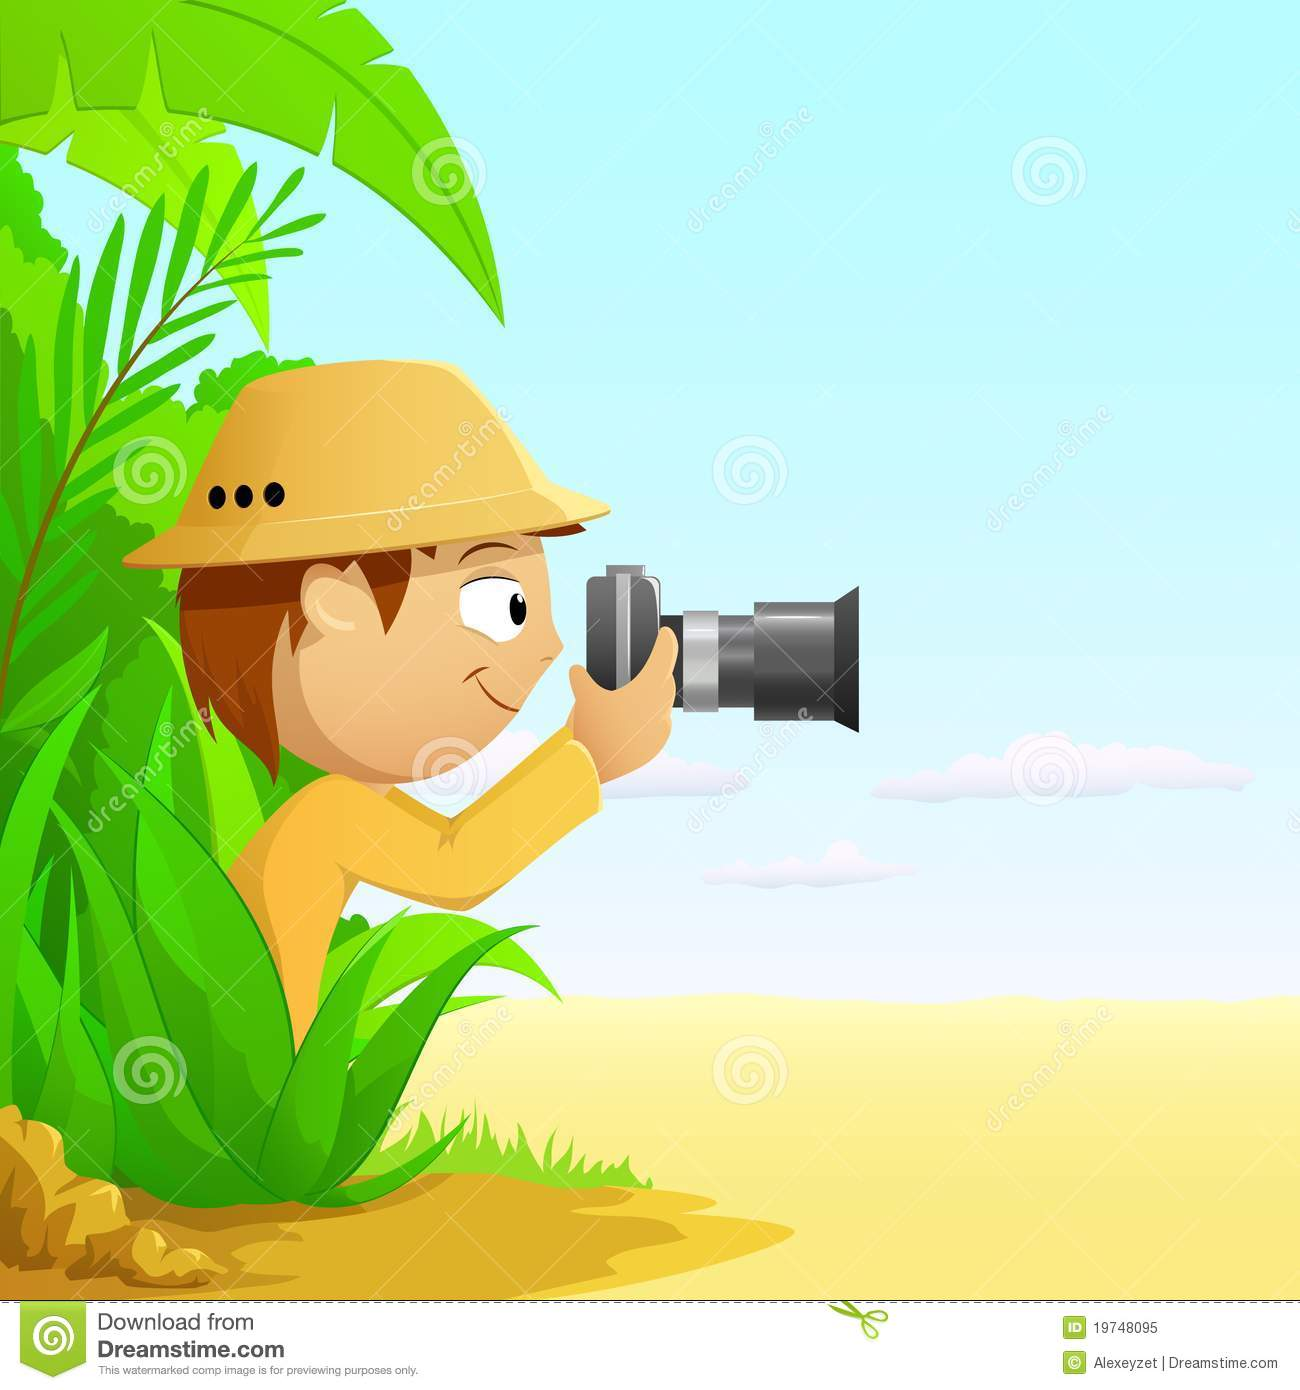 ... similar stock images of ` Photographer cartoon hunter in rainforest